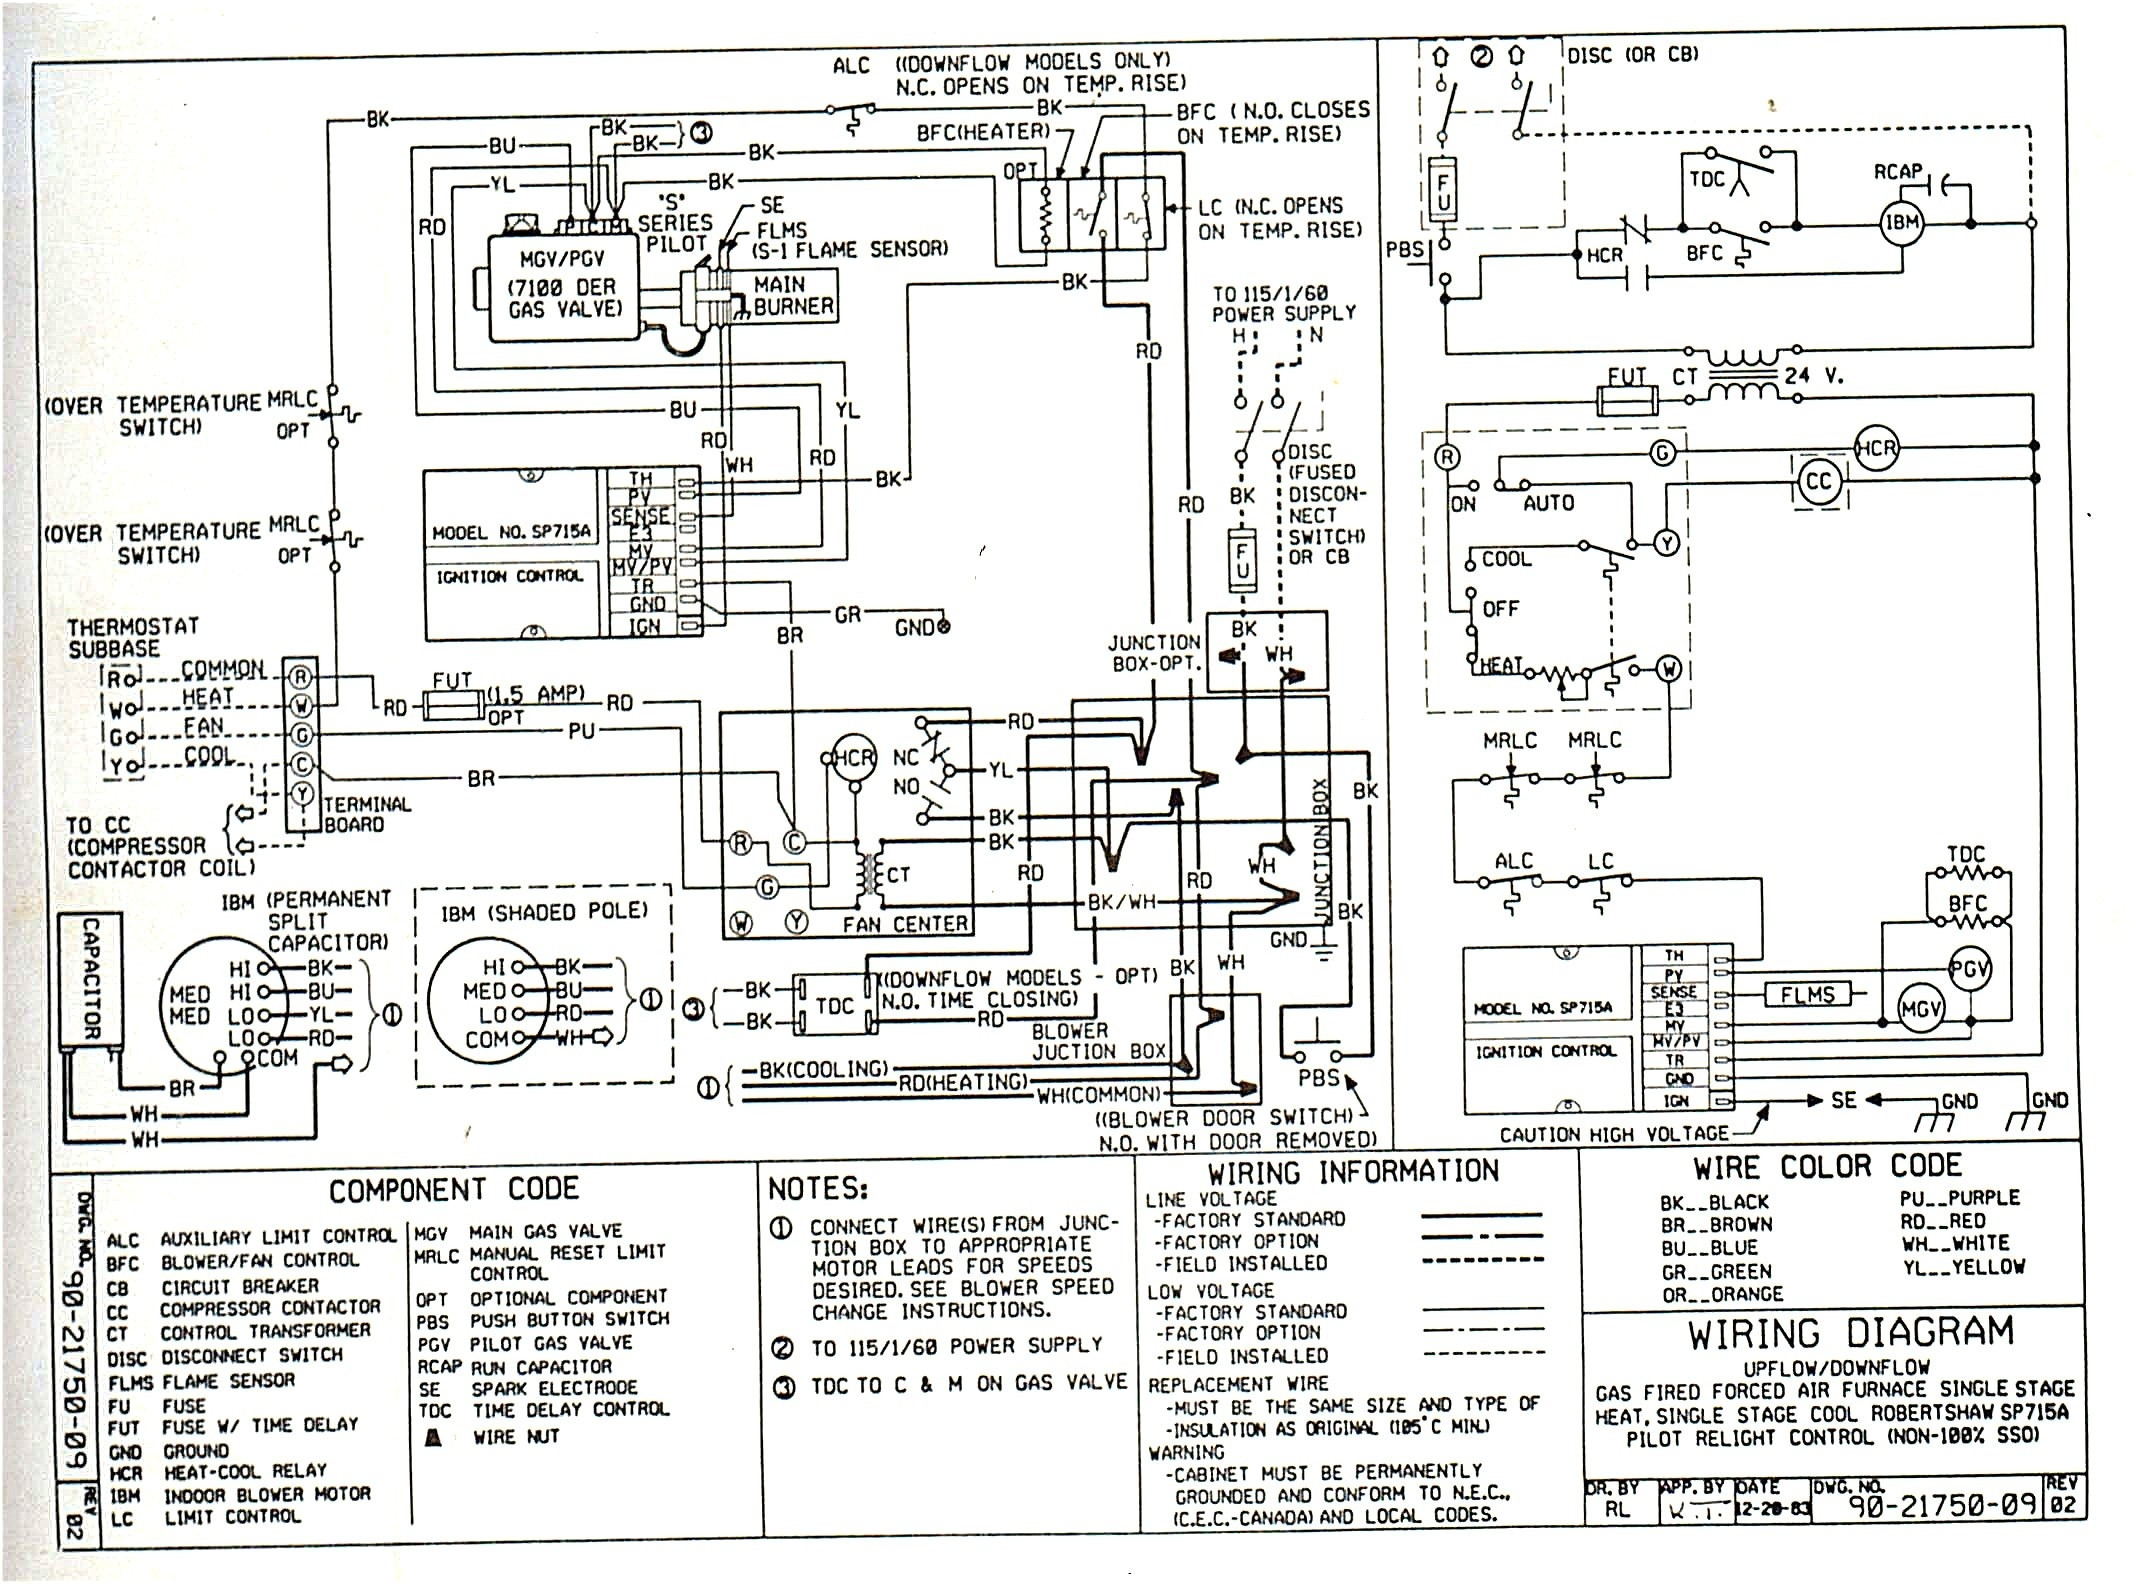 Gas Valve Electrical Schematic